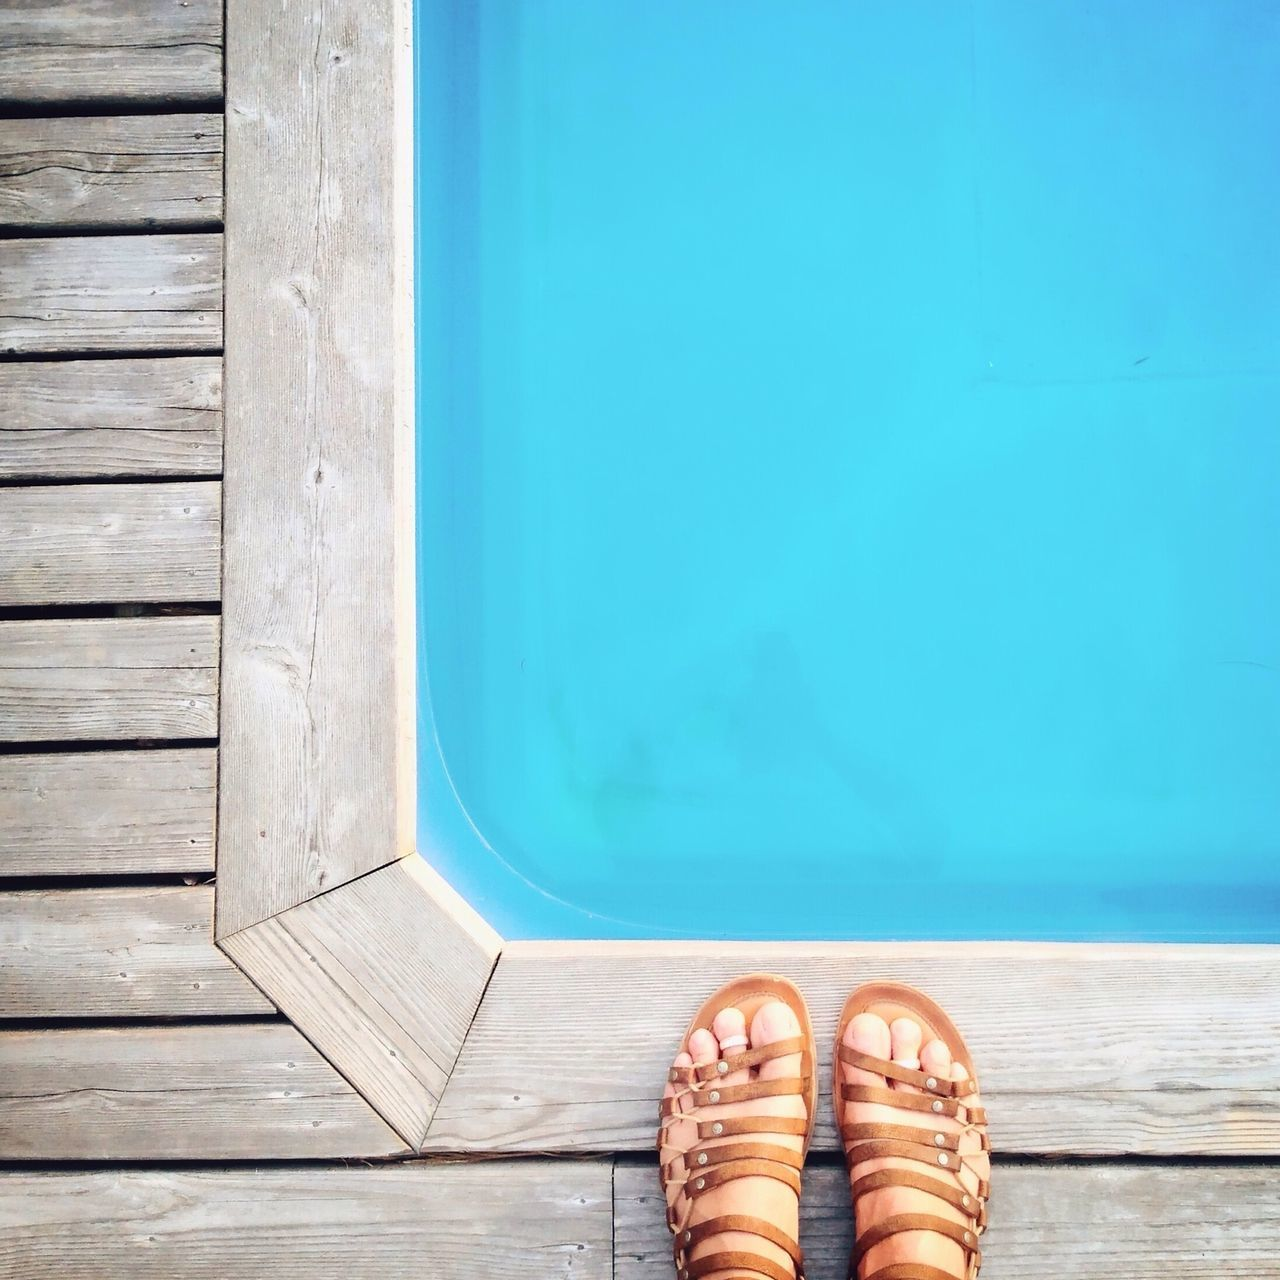 Beautiful stock photos of pool, Blue, Brookhaven, Day, Floor